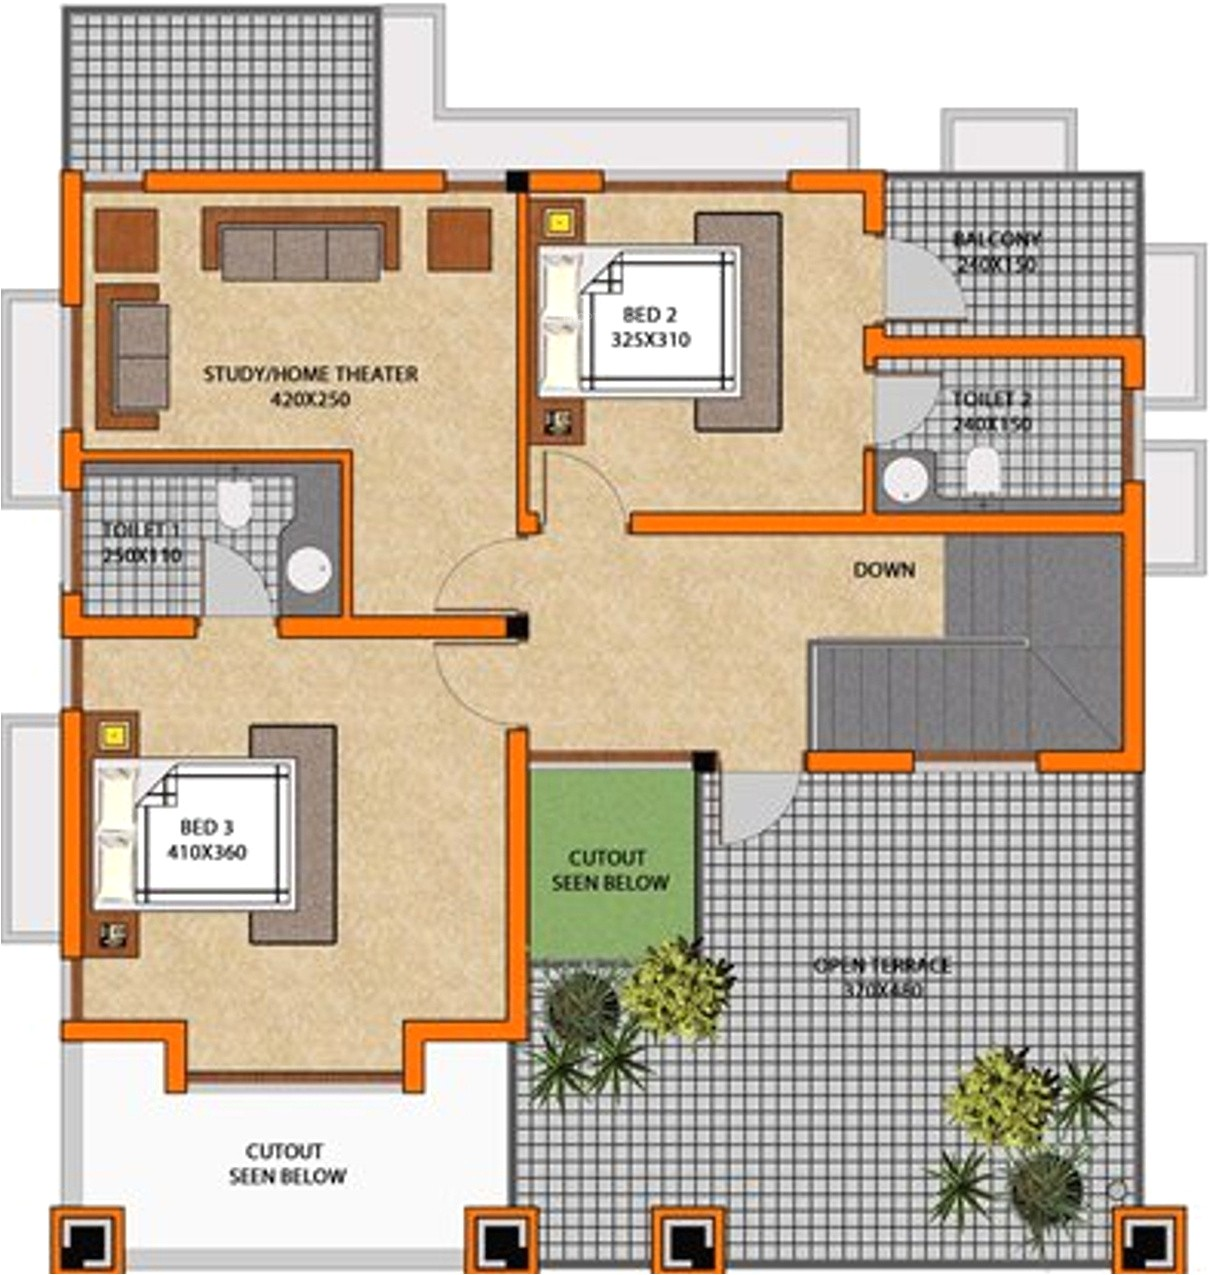 carefree homes floor plans best of horizon hills estates carefree homes new home builder